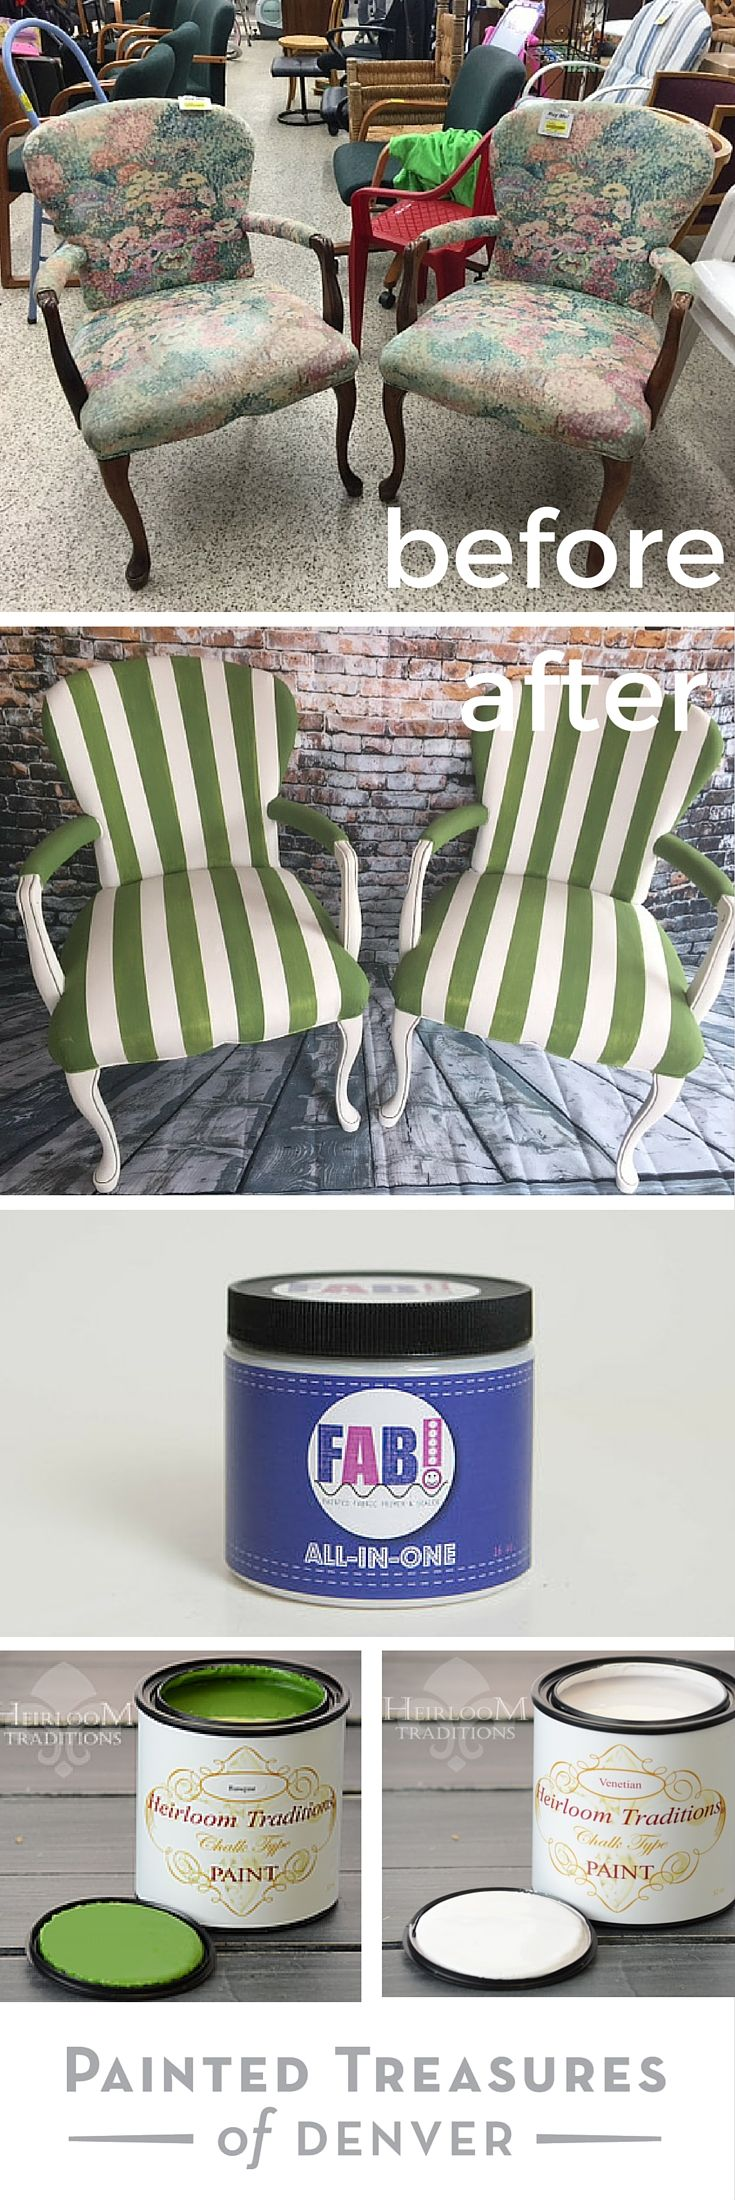 You can paint fabric and upholstery using FAB! Check out my chair makeover using Heirloom Traditions FAB! Primer and sealer. I painted them with chalk type paint in Venetian and Basque and planned out the stripes using frogtape. Now they are modern geometric chairs. No more ugly upholstery. Get 10% off using PAINTEDTREASURES promo code at checkout.